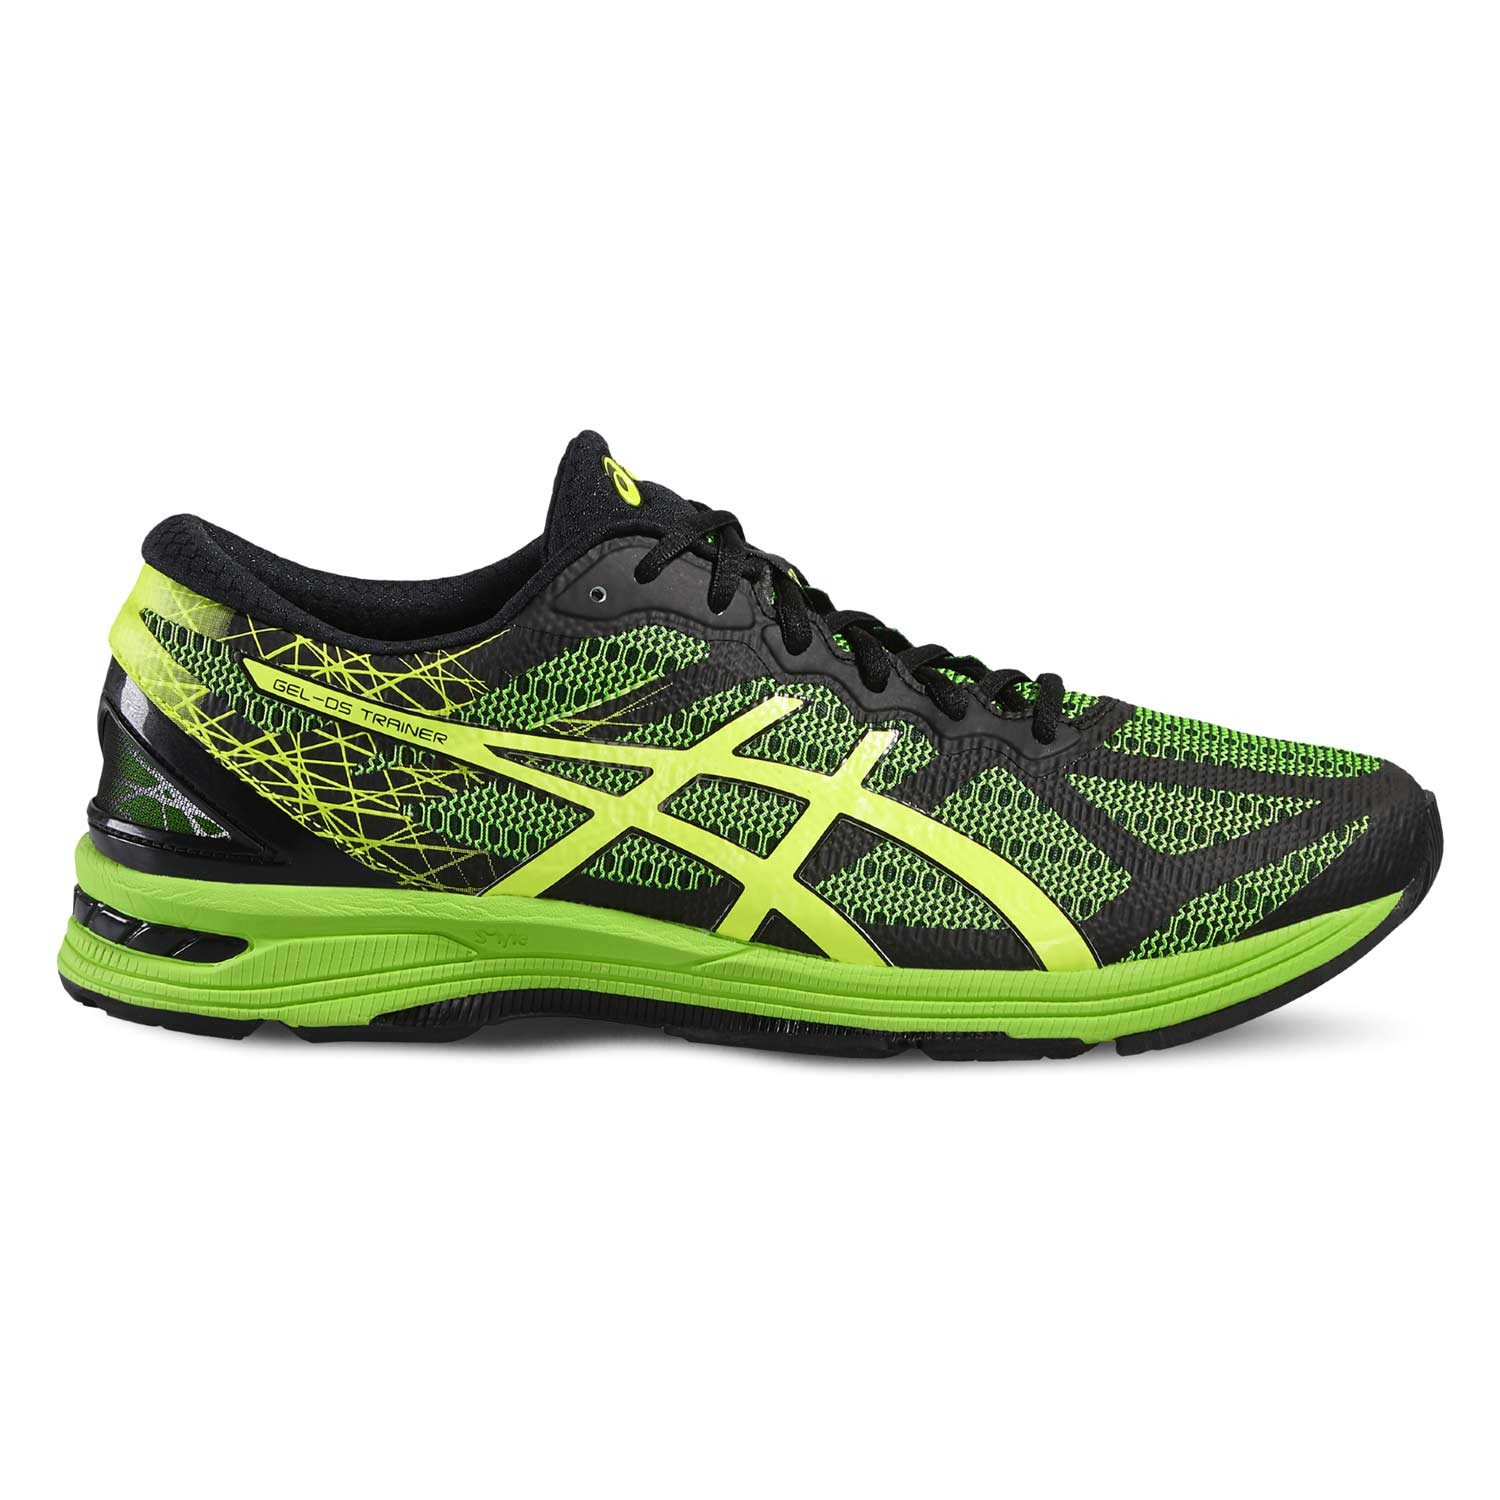 RUNNING SHOES ASICS GEL DS TRAINER 21